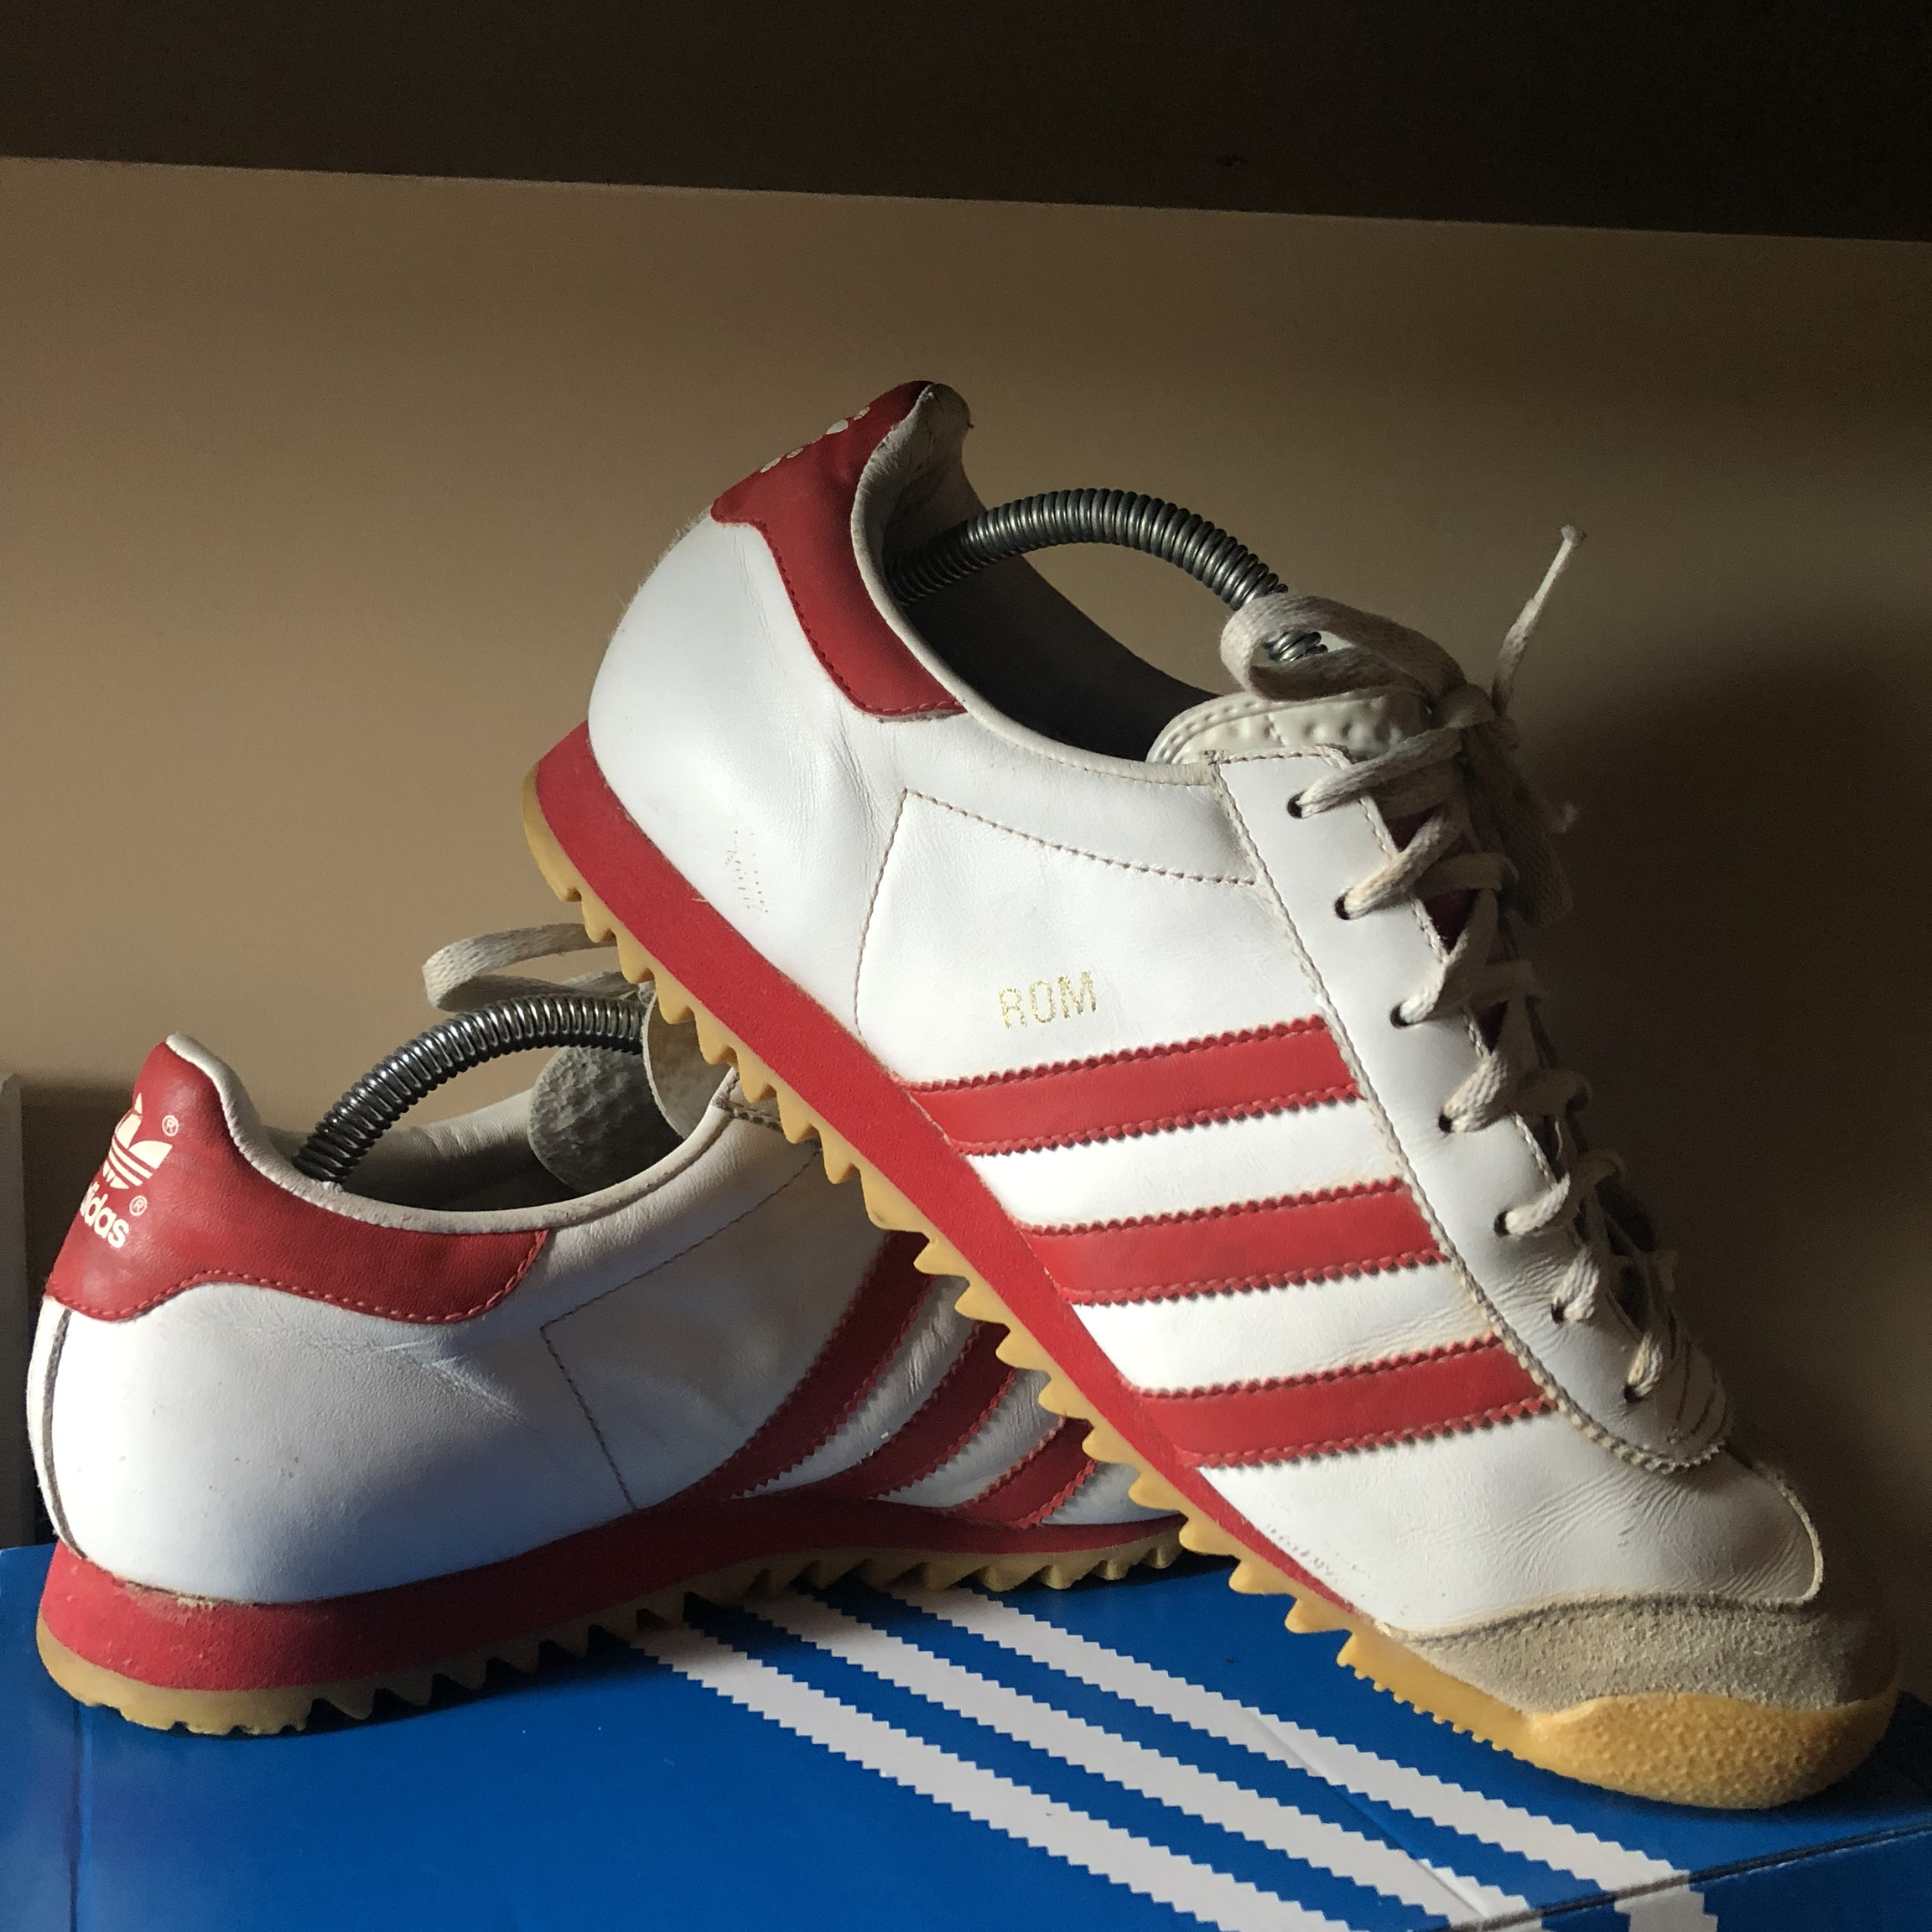 Vintage Adidas ROM Trainers. Size 9. Great condition...